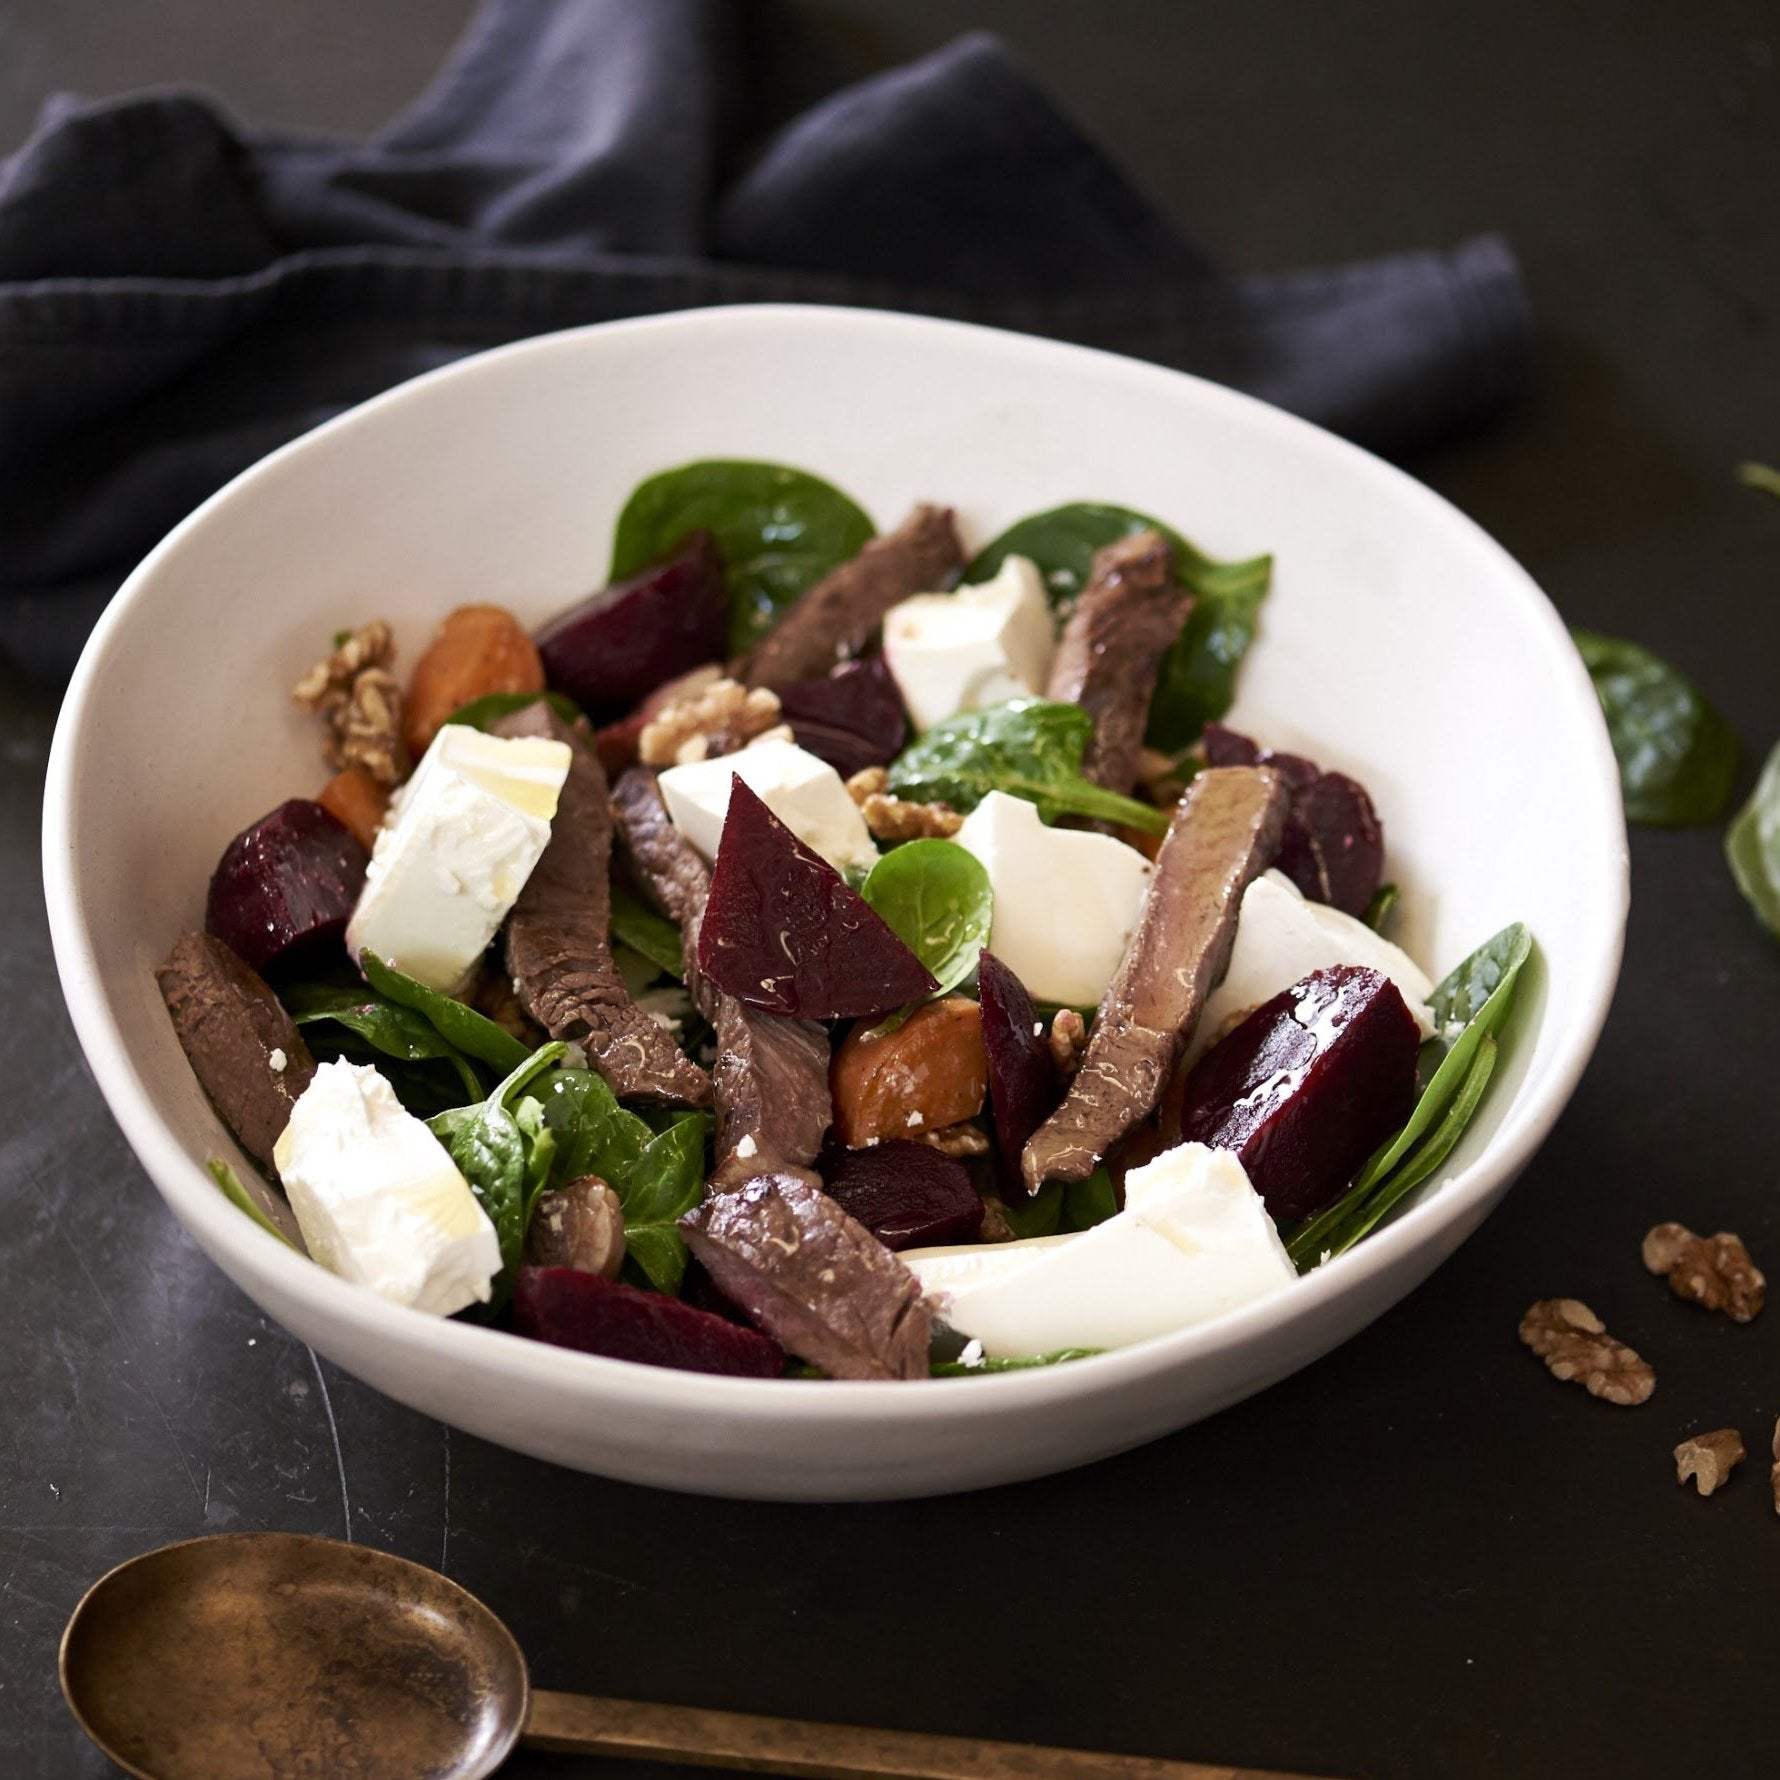 Beetroot, Pumpkin & Walnut Salad with Beef Strips